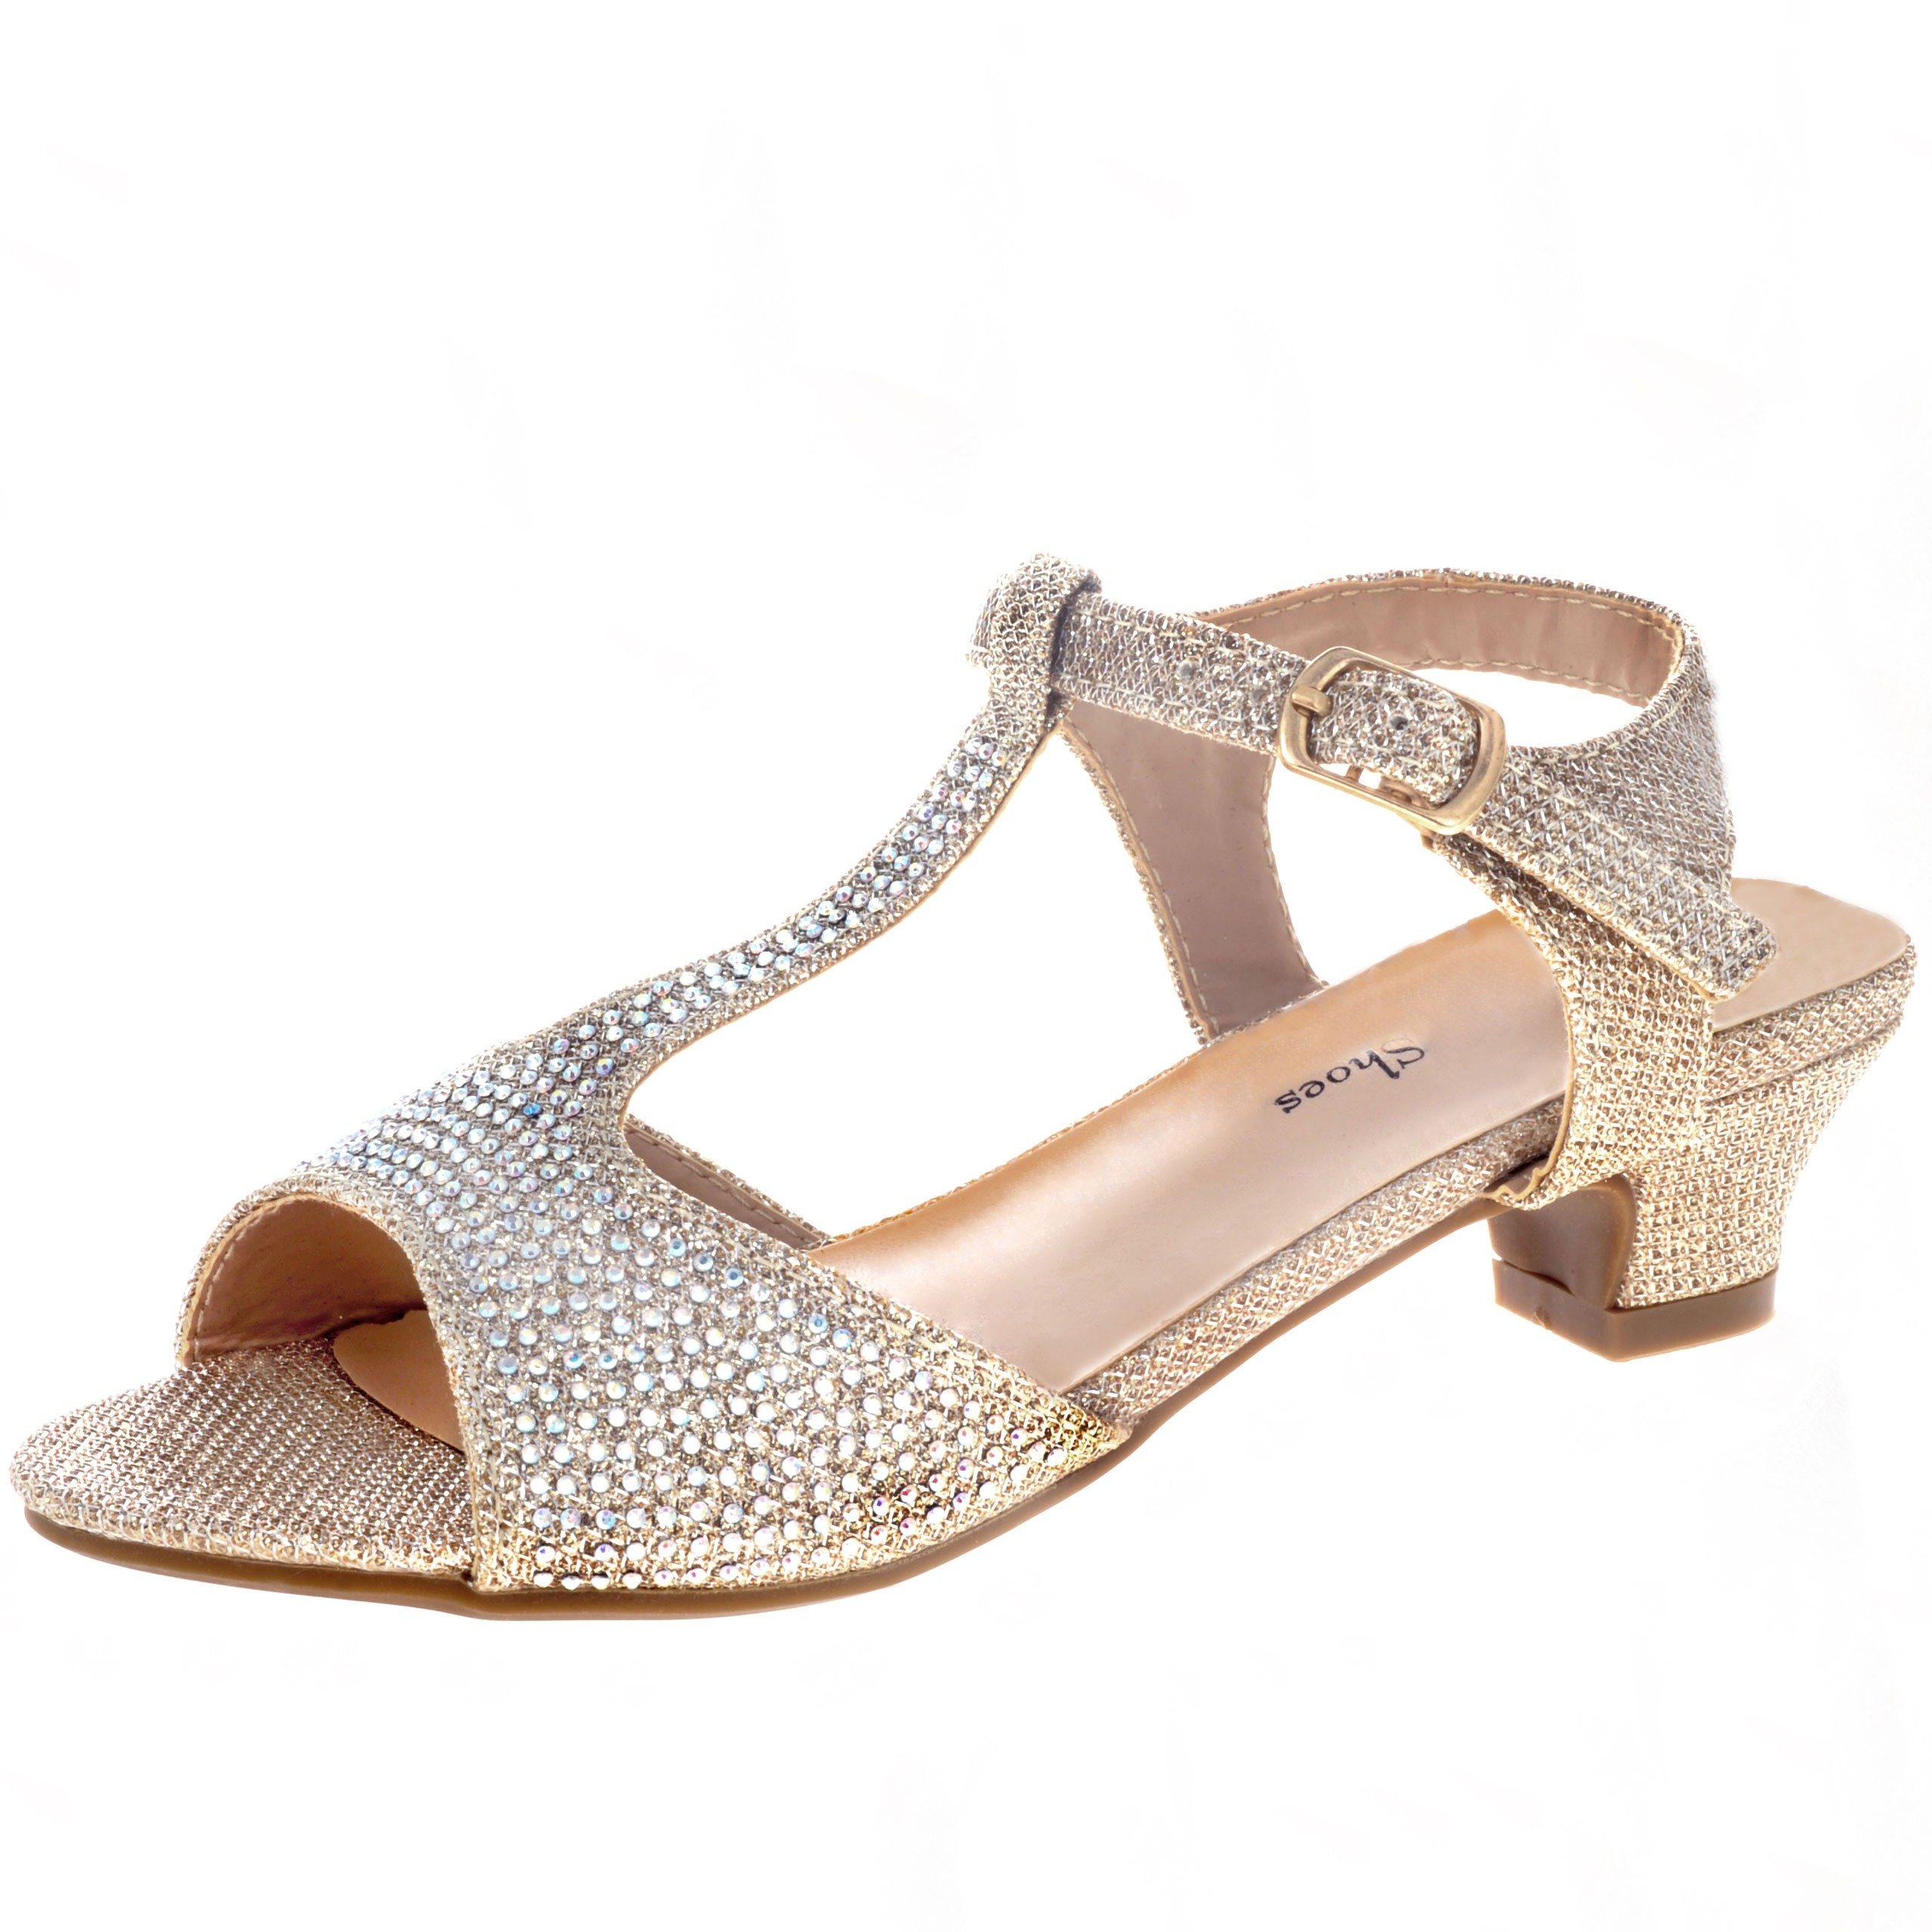 5f6a2ad82c89 Your Party Shoes Holly Jeweled Girls  T-Strap Evening Shoe